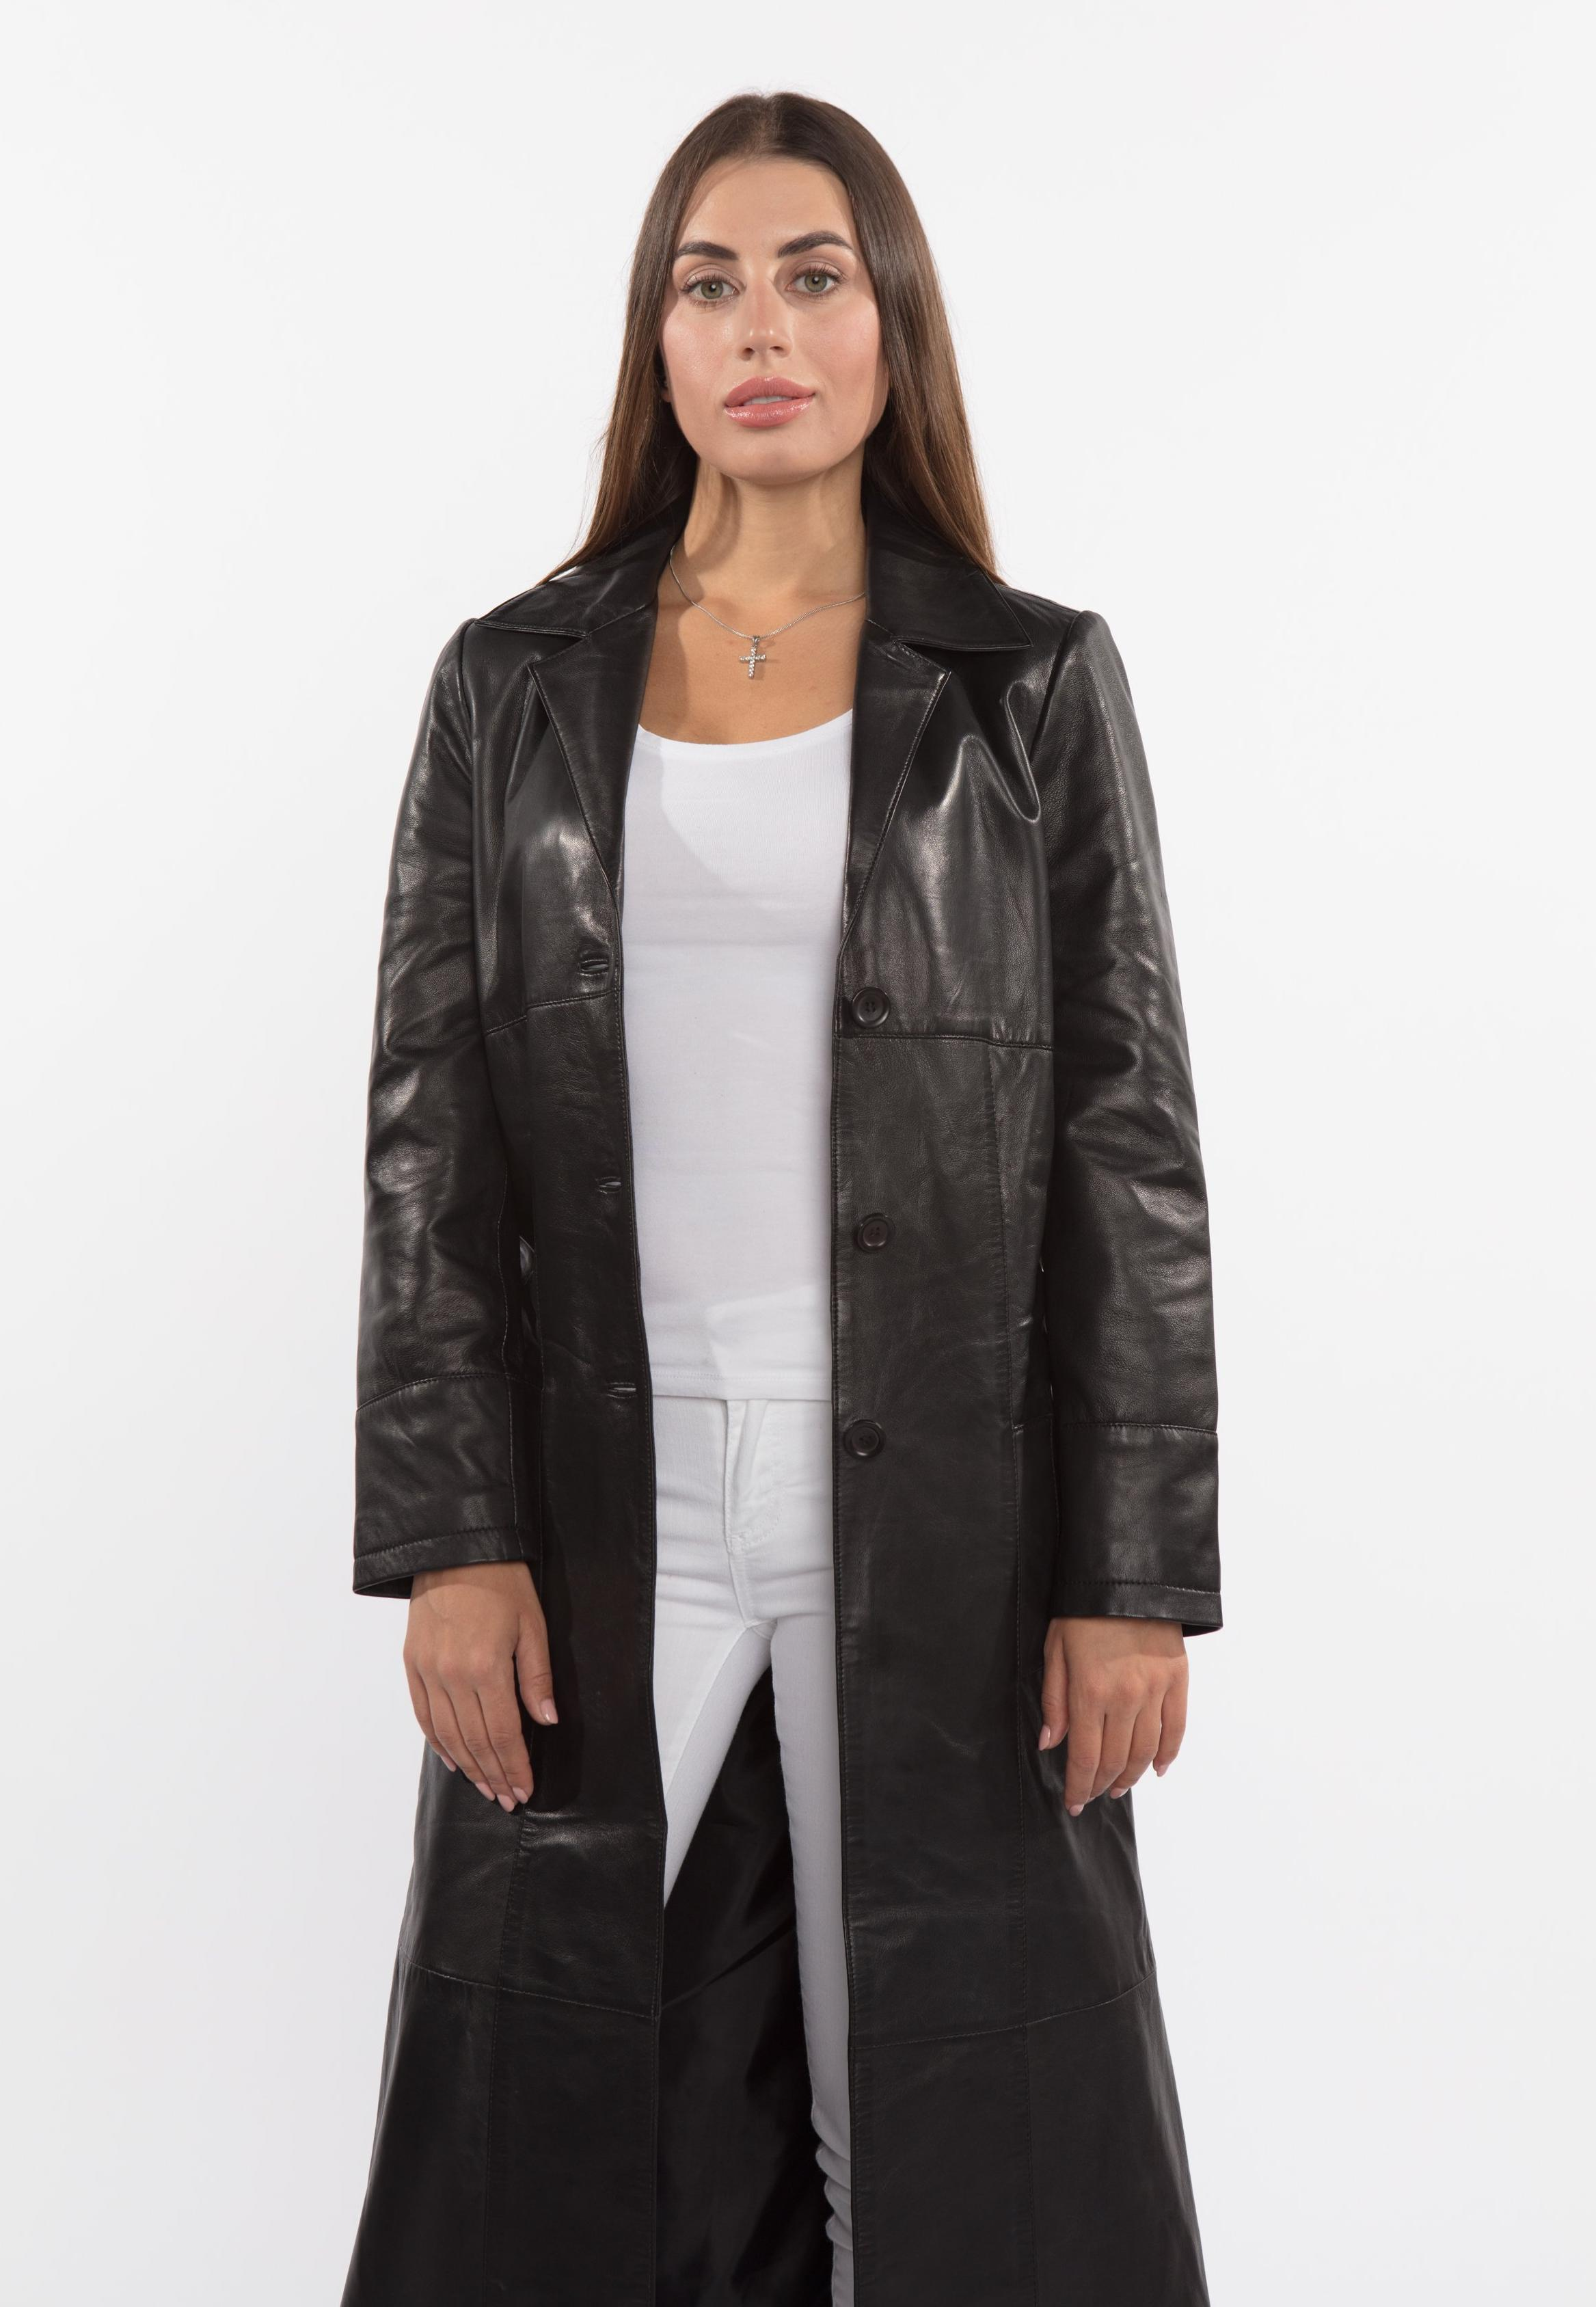 Womens Leather Coat - Ladies 3 Button Matrix Black Full Length Leather Coat